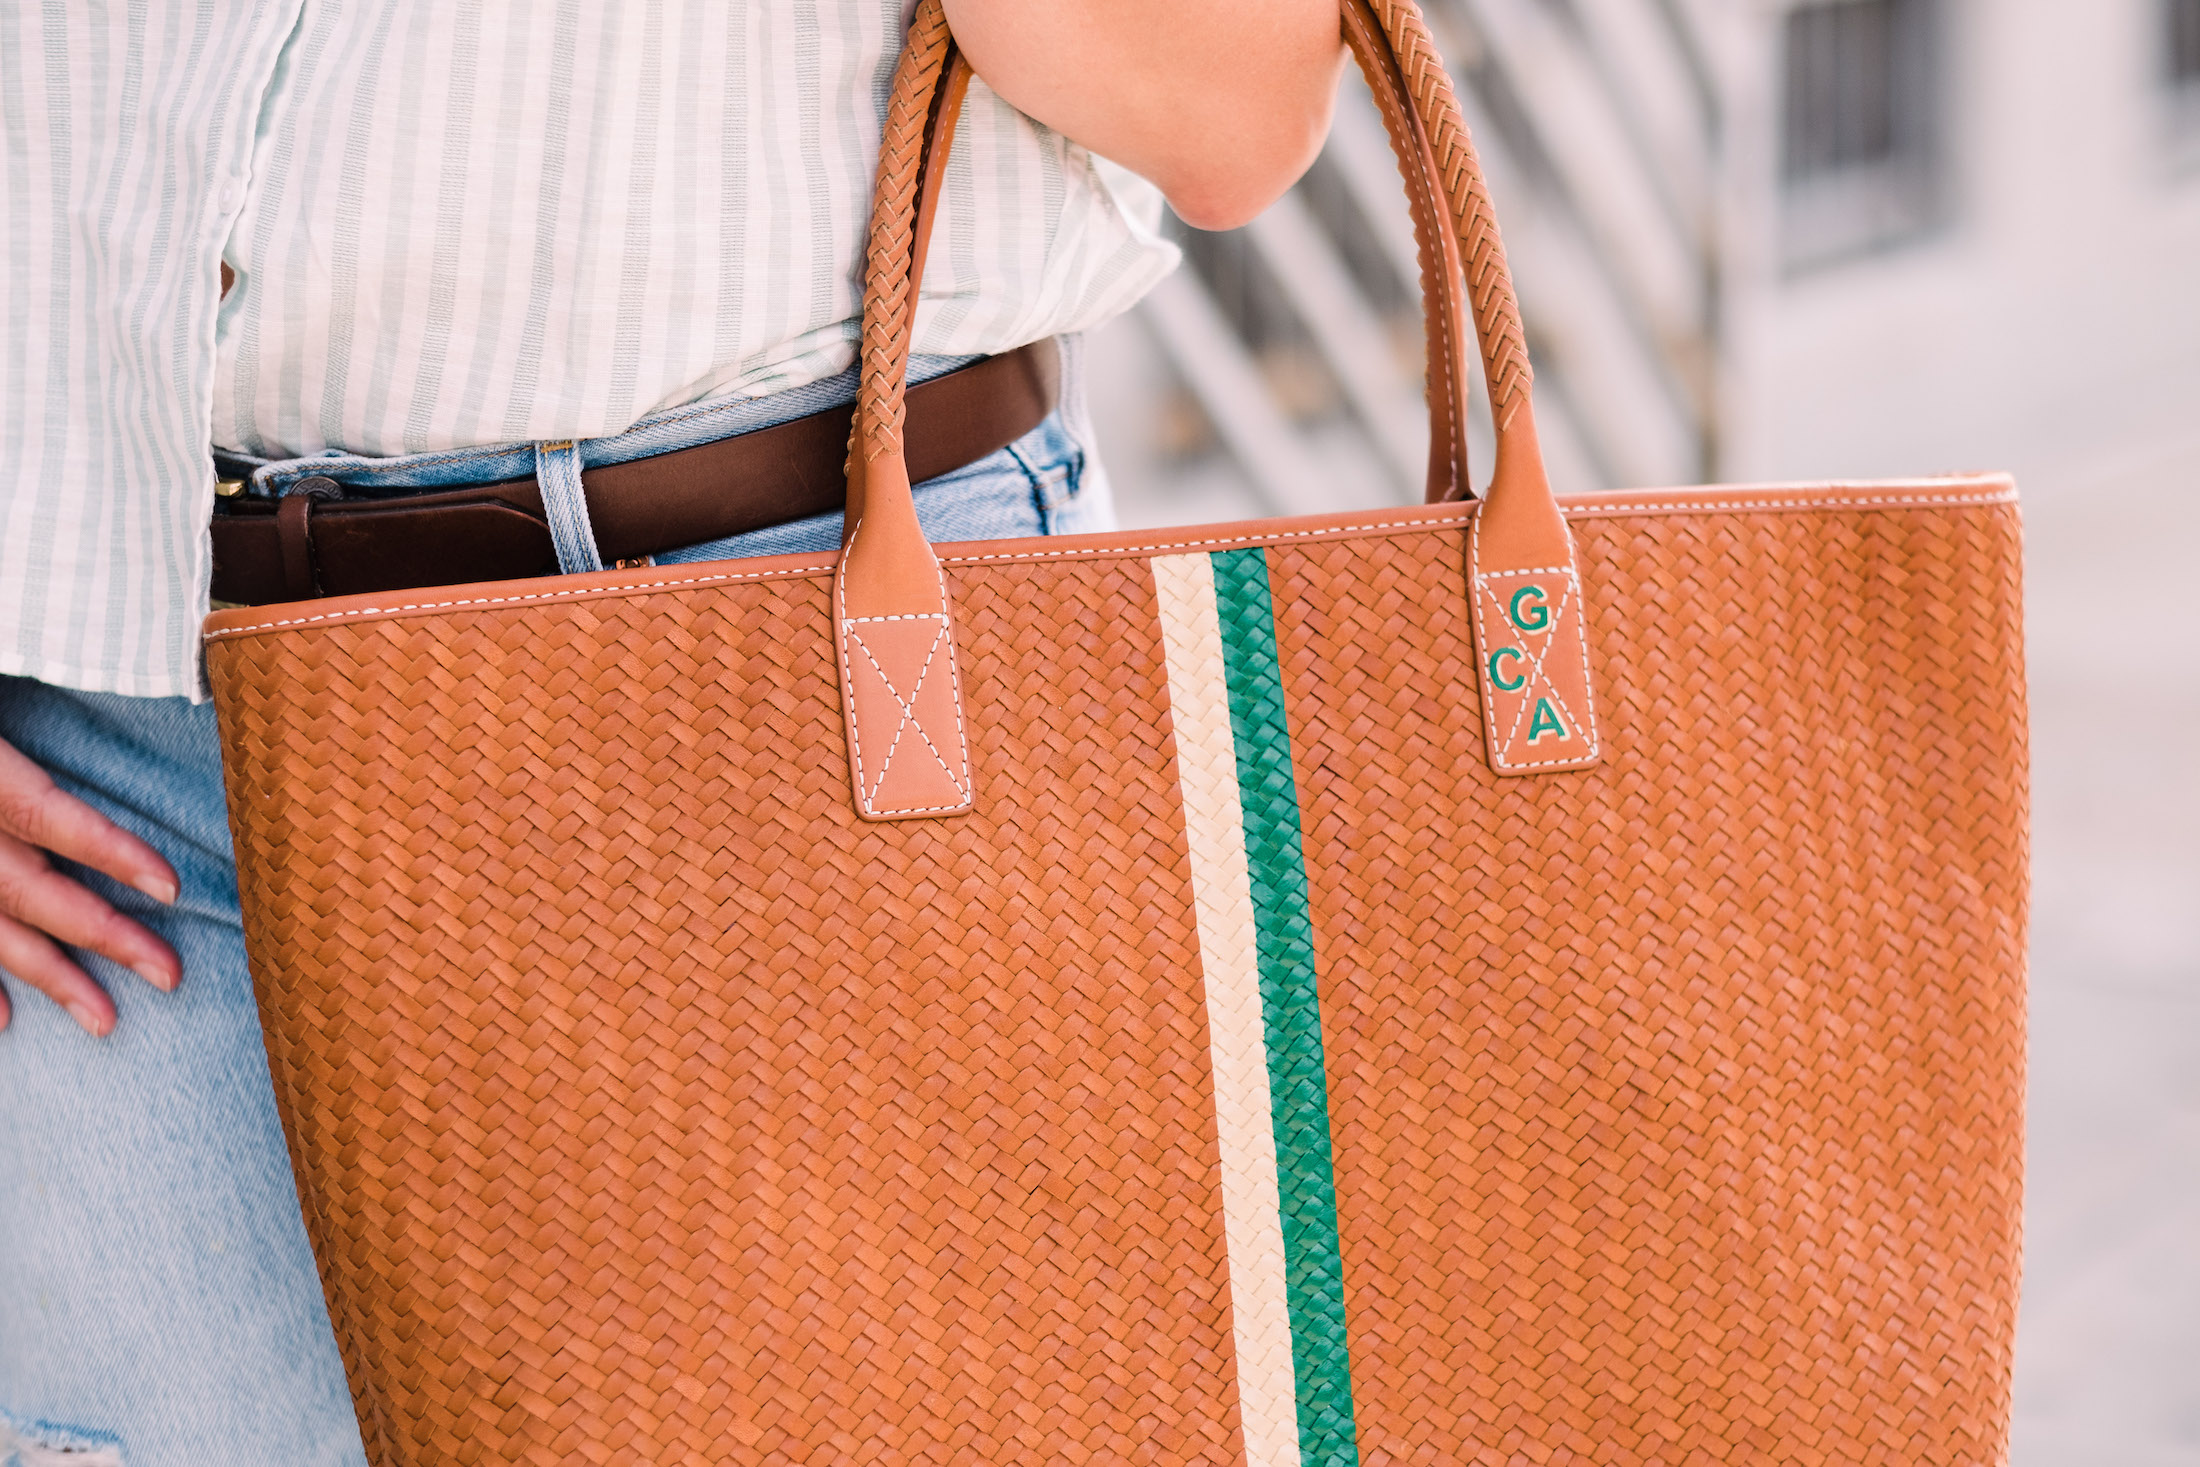 J. McLaughlin Bag (custom monogram by Hathaway Hutton)